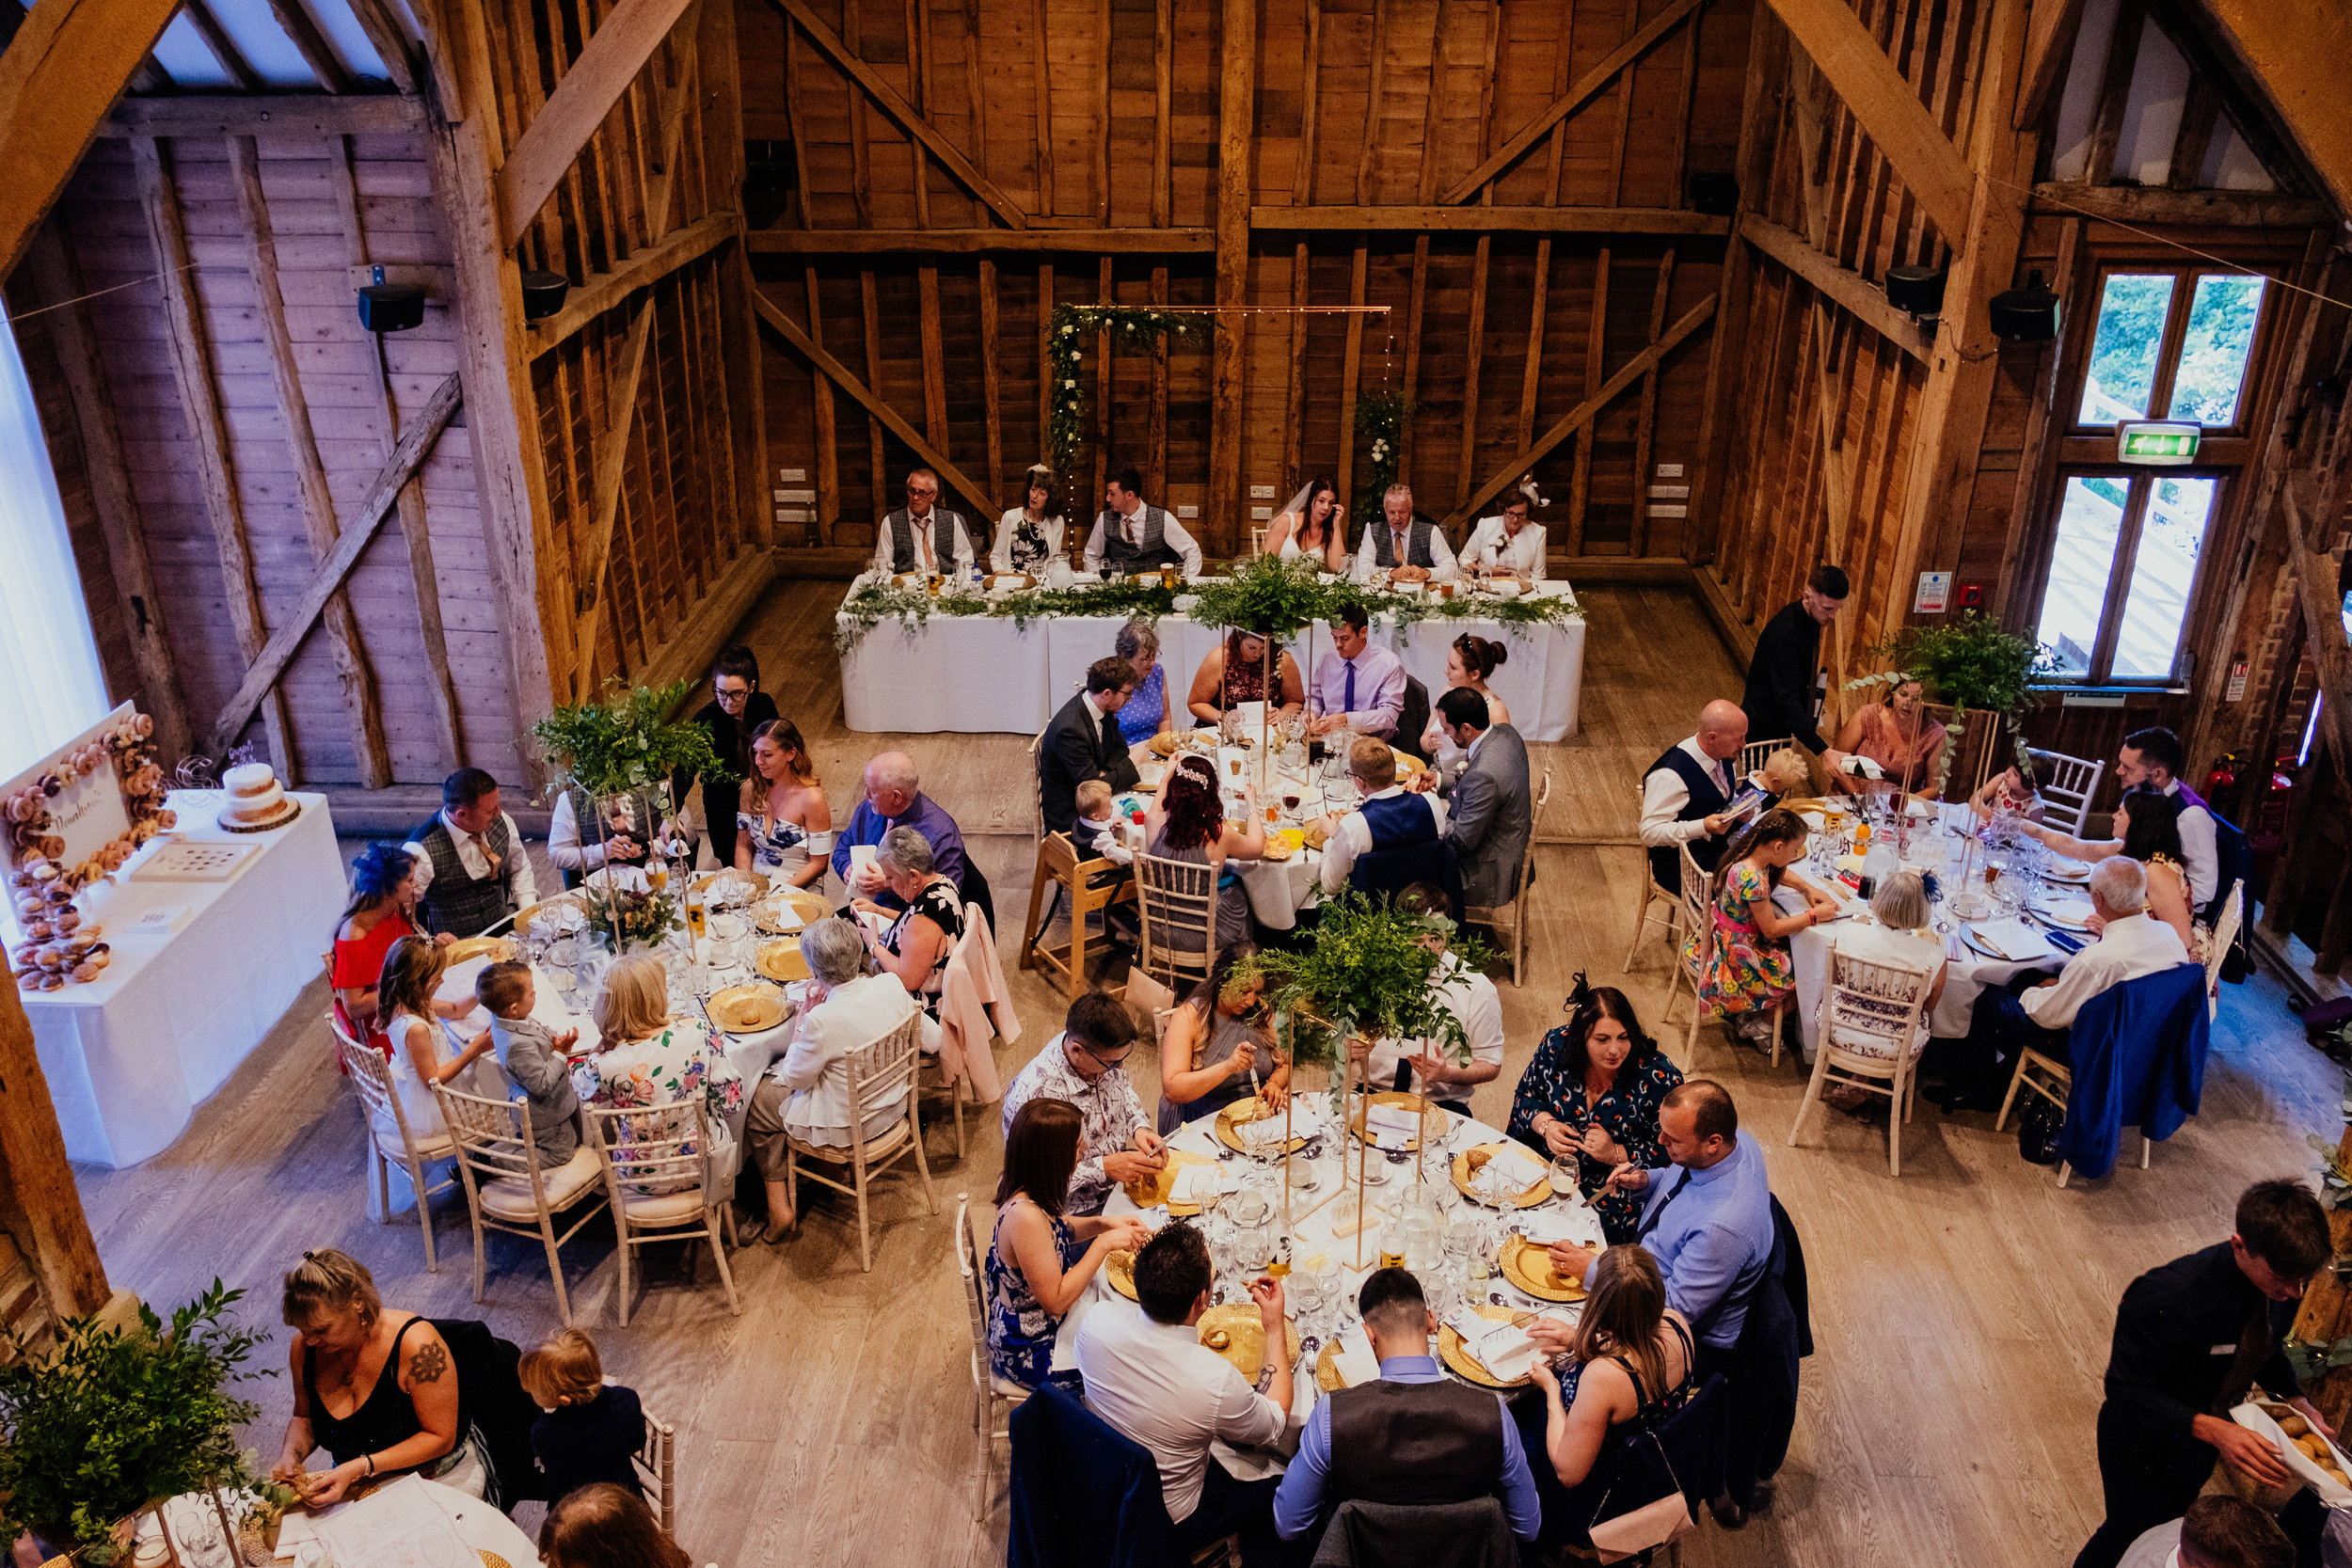 Wedding reception in the Tythe Barn at Tewin Bury Farm